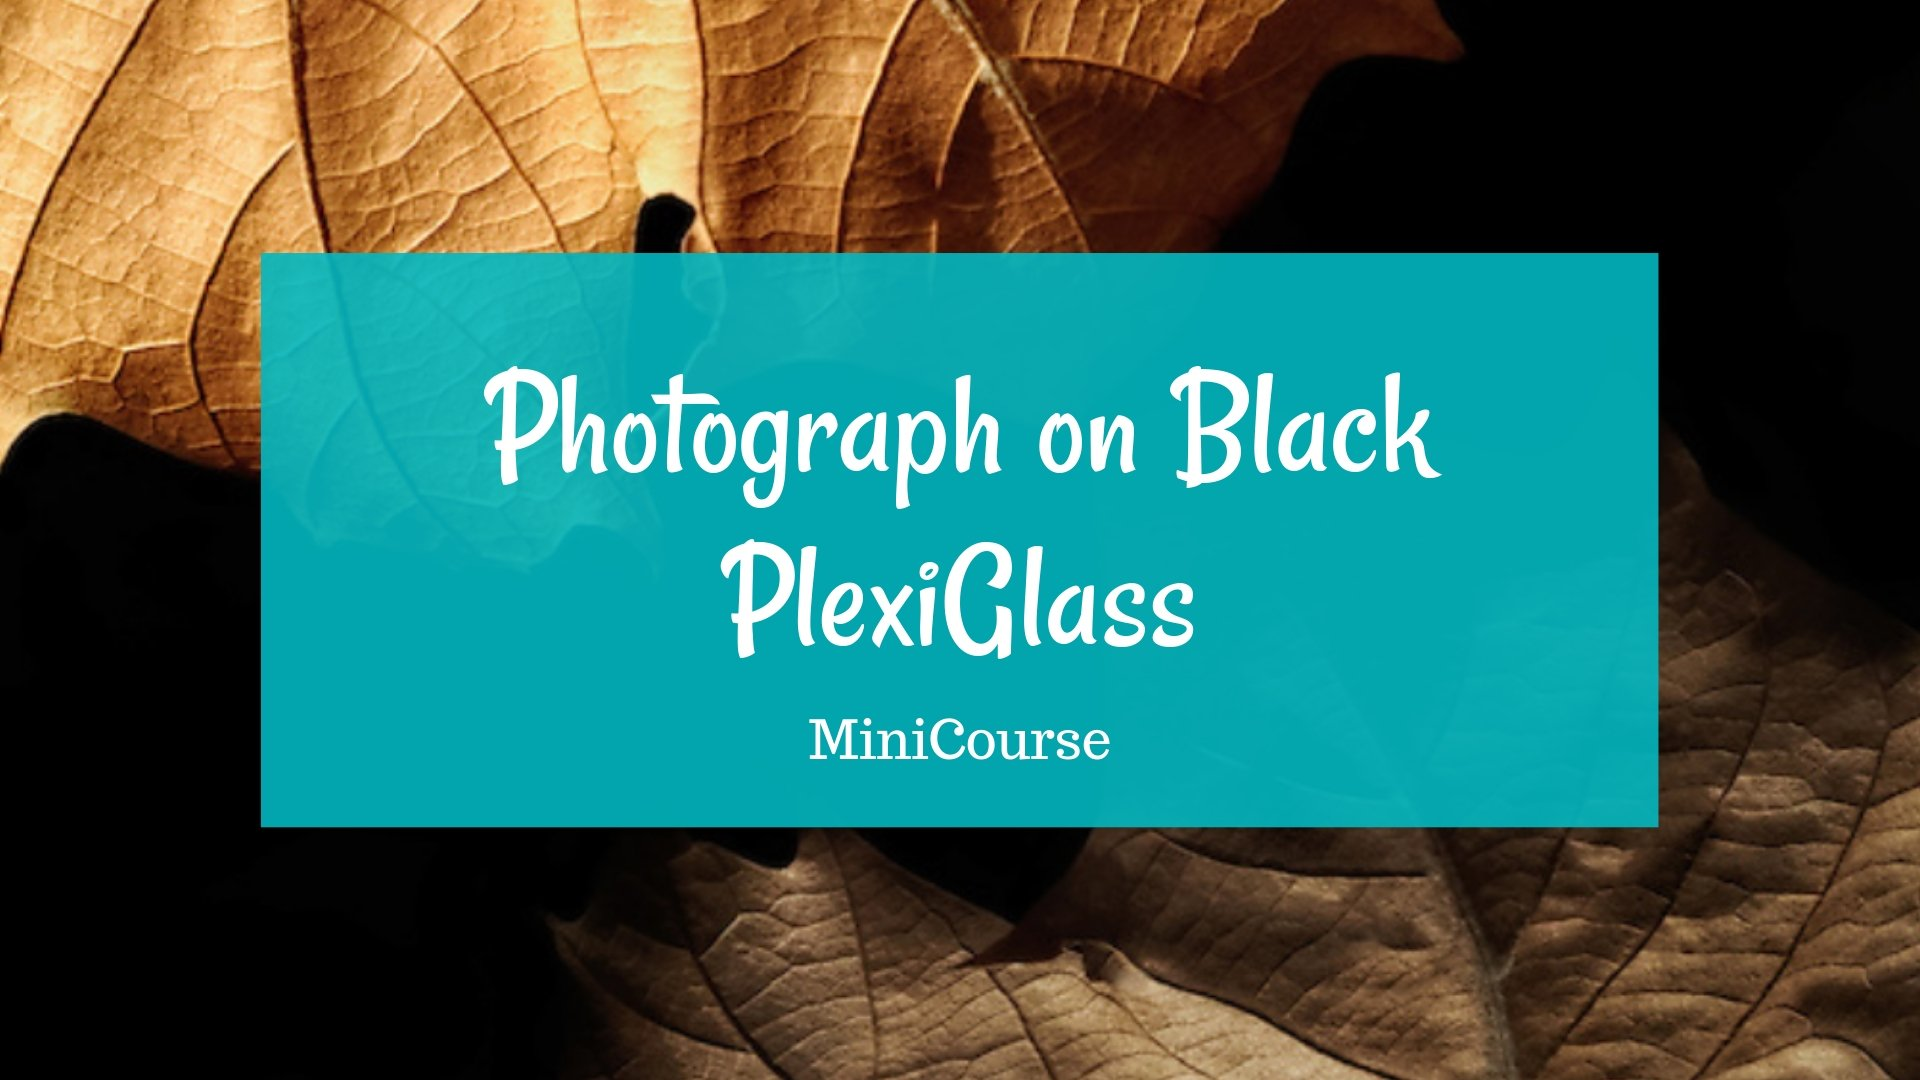 photograph on black plexiglass course